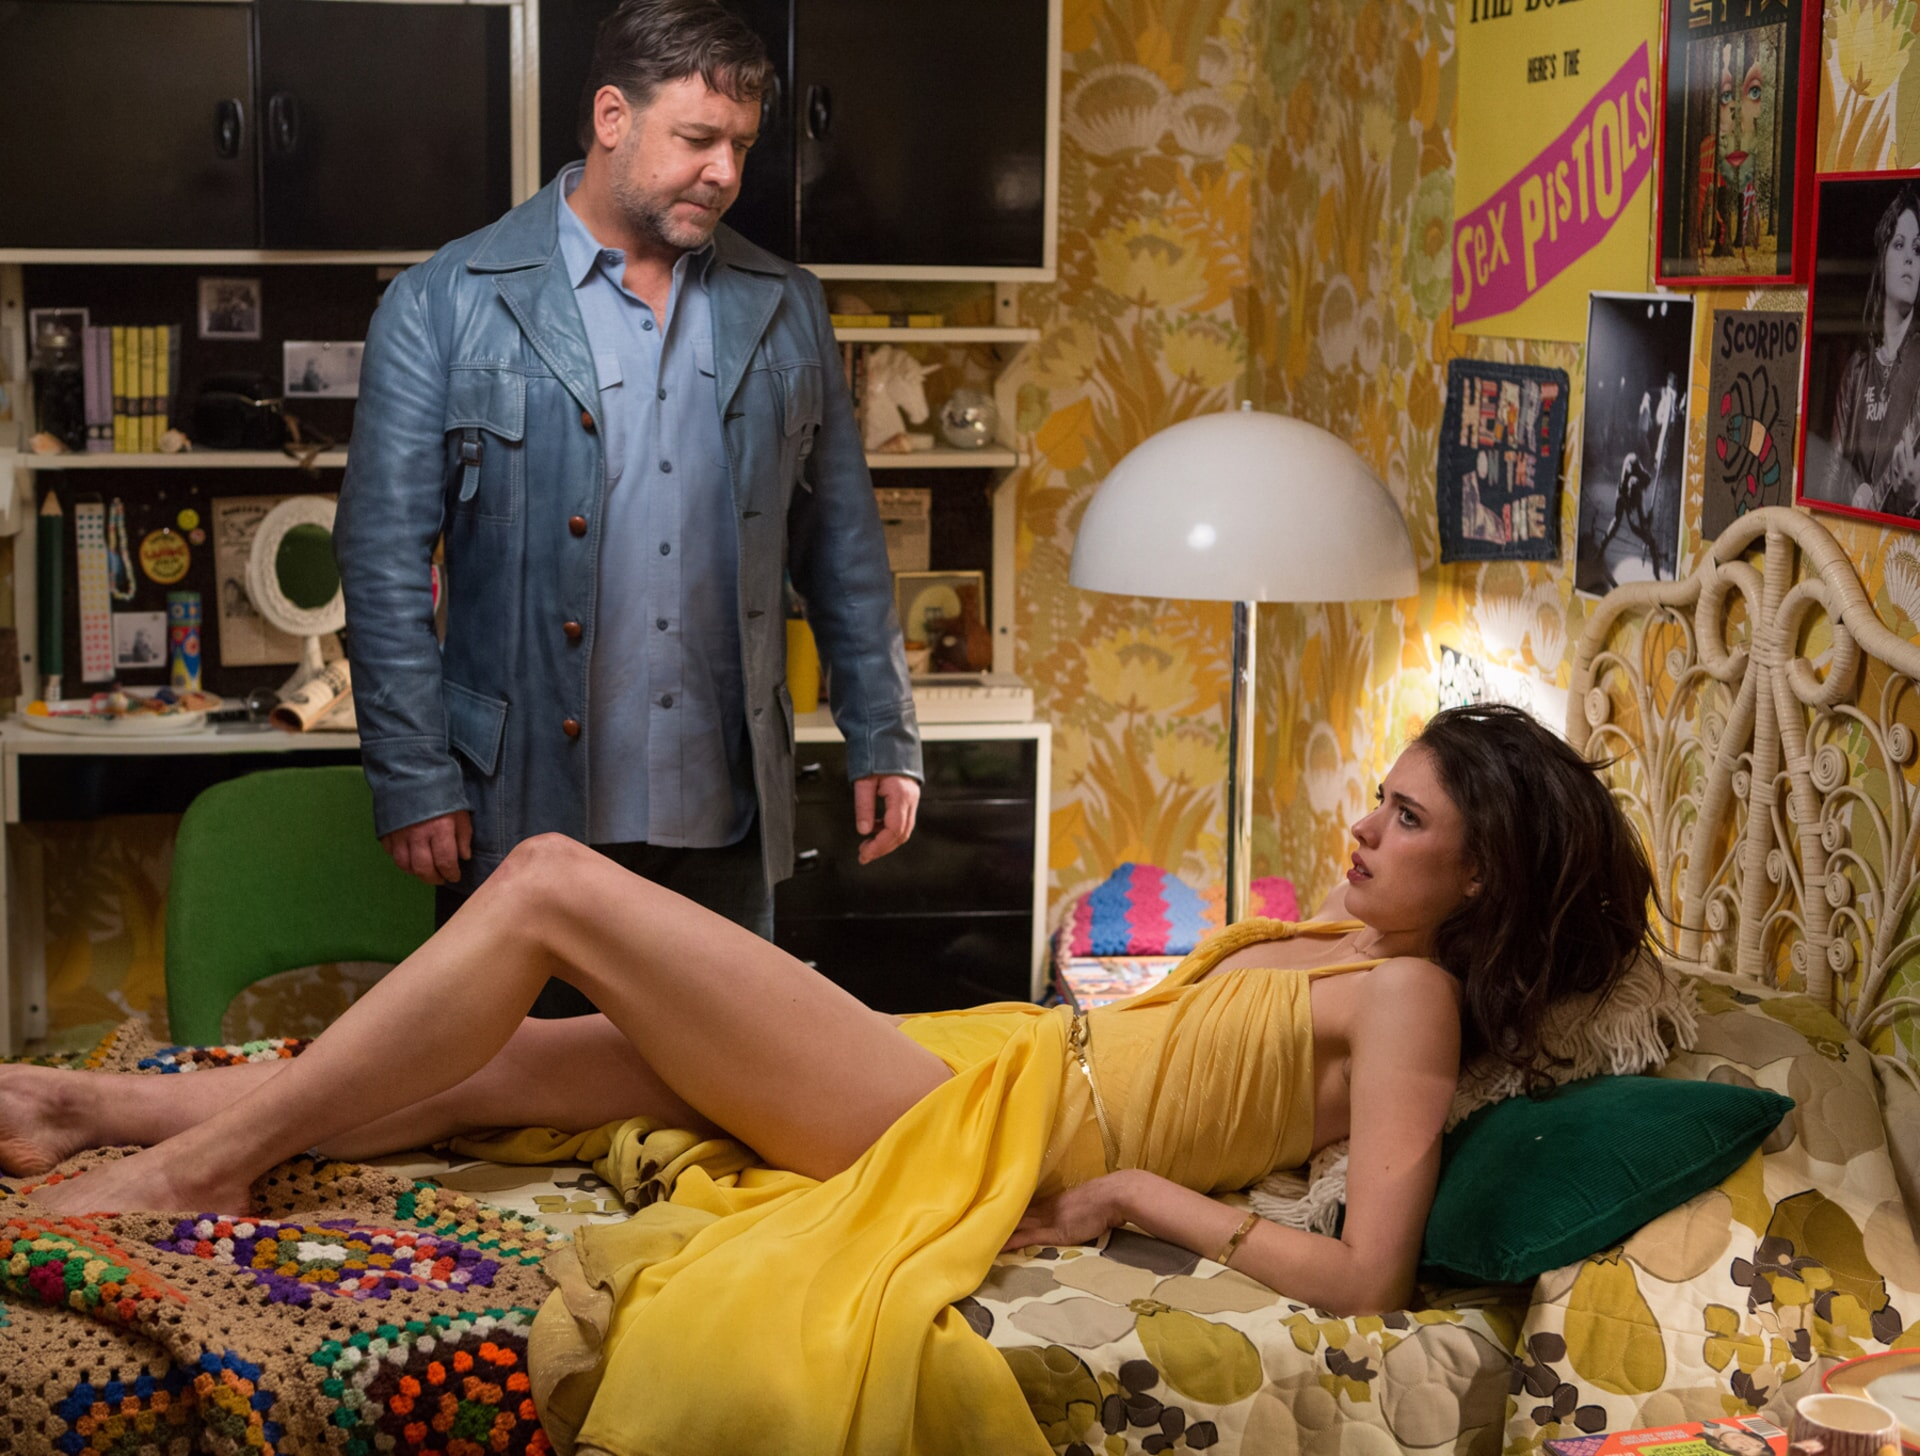 RUSSELL CROWE as Jackson Healy and MARGARET QUALLEY as Amelia Kuttner lying in bed and wearing a yellow dress